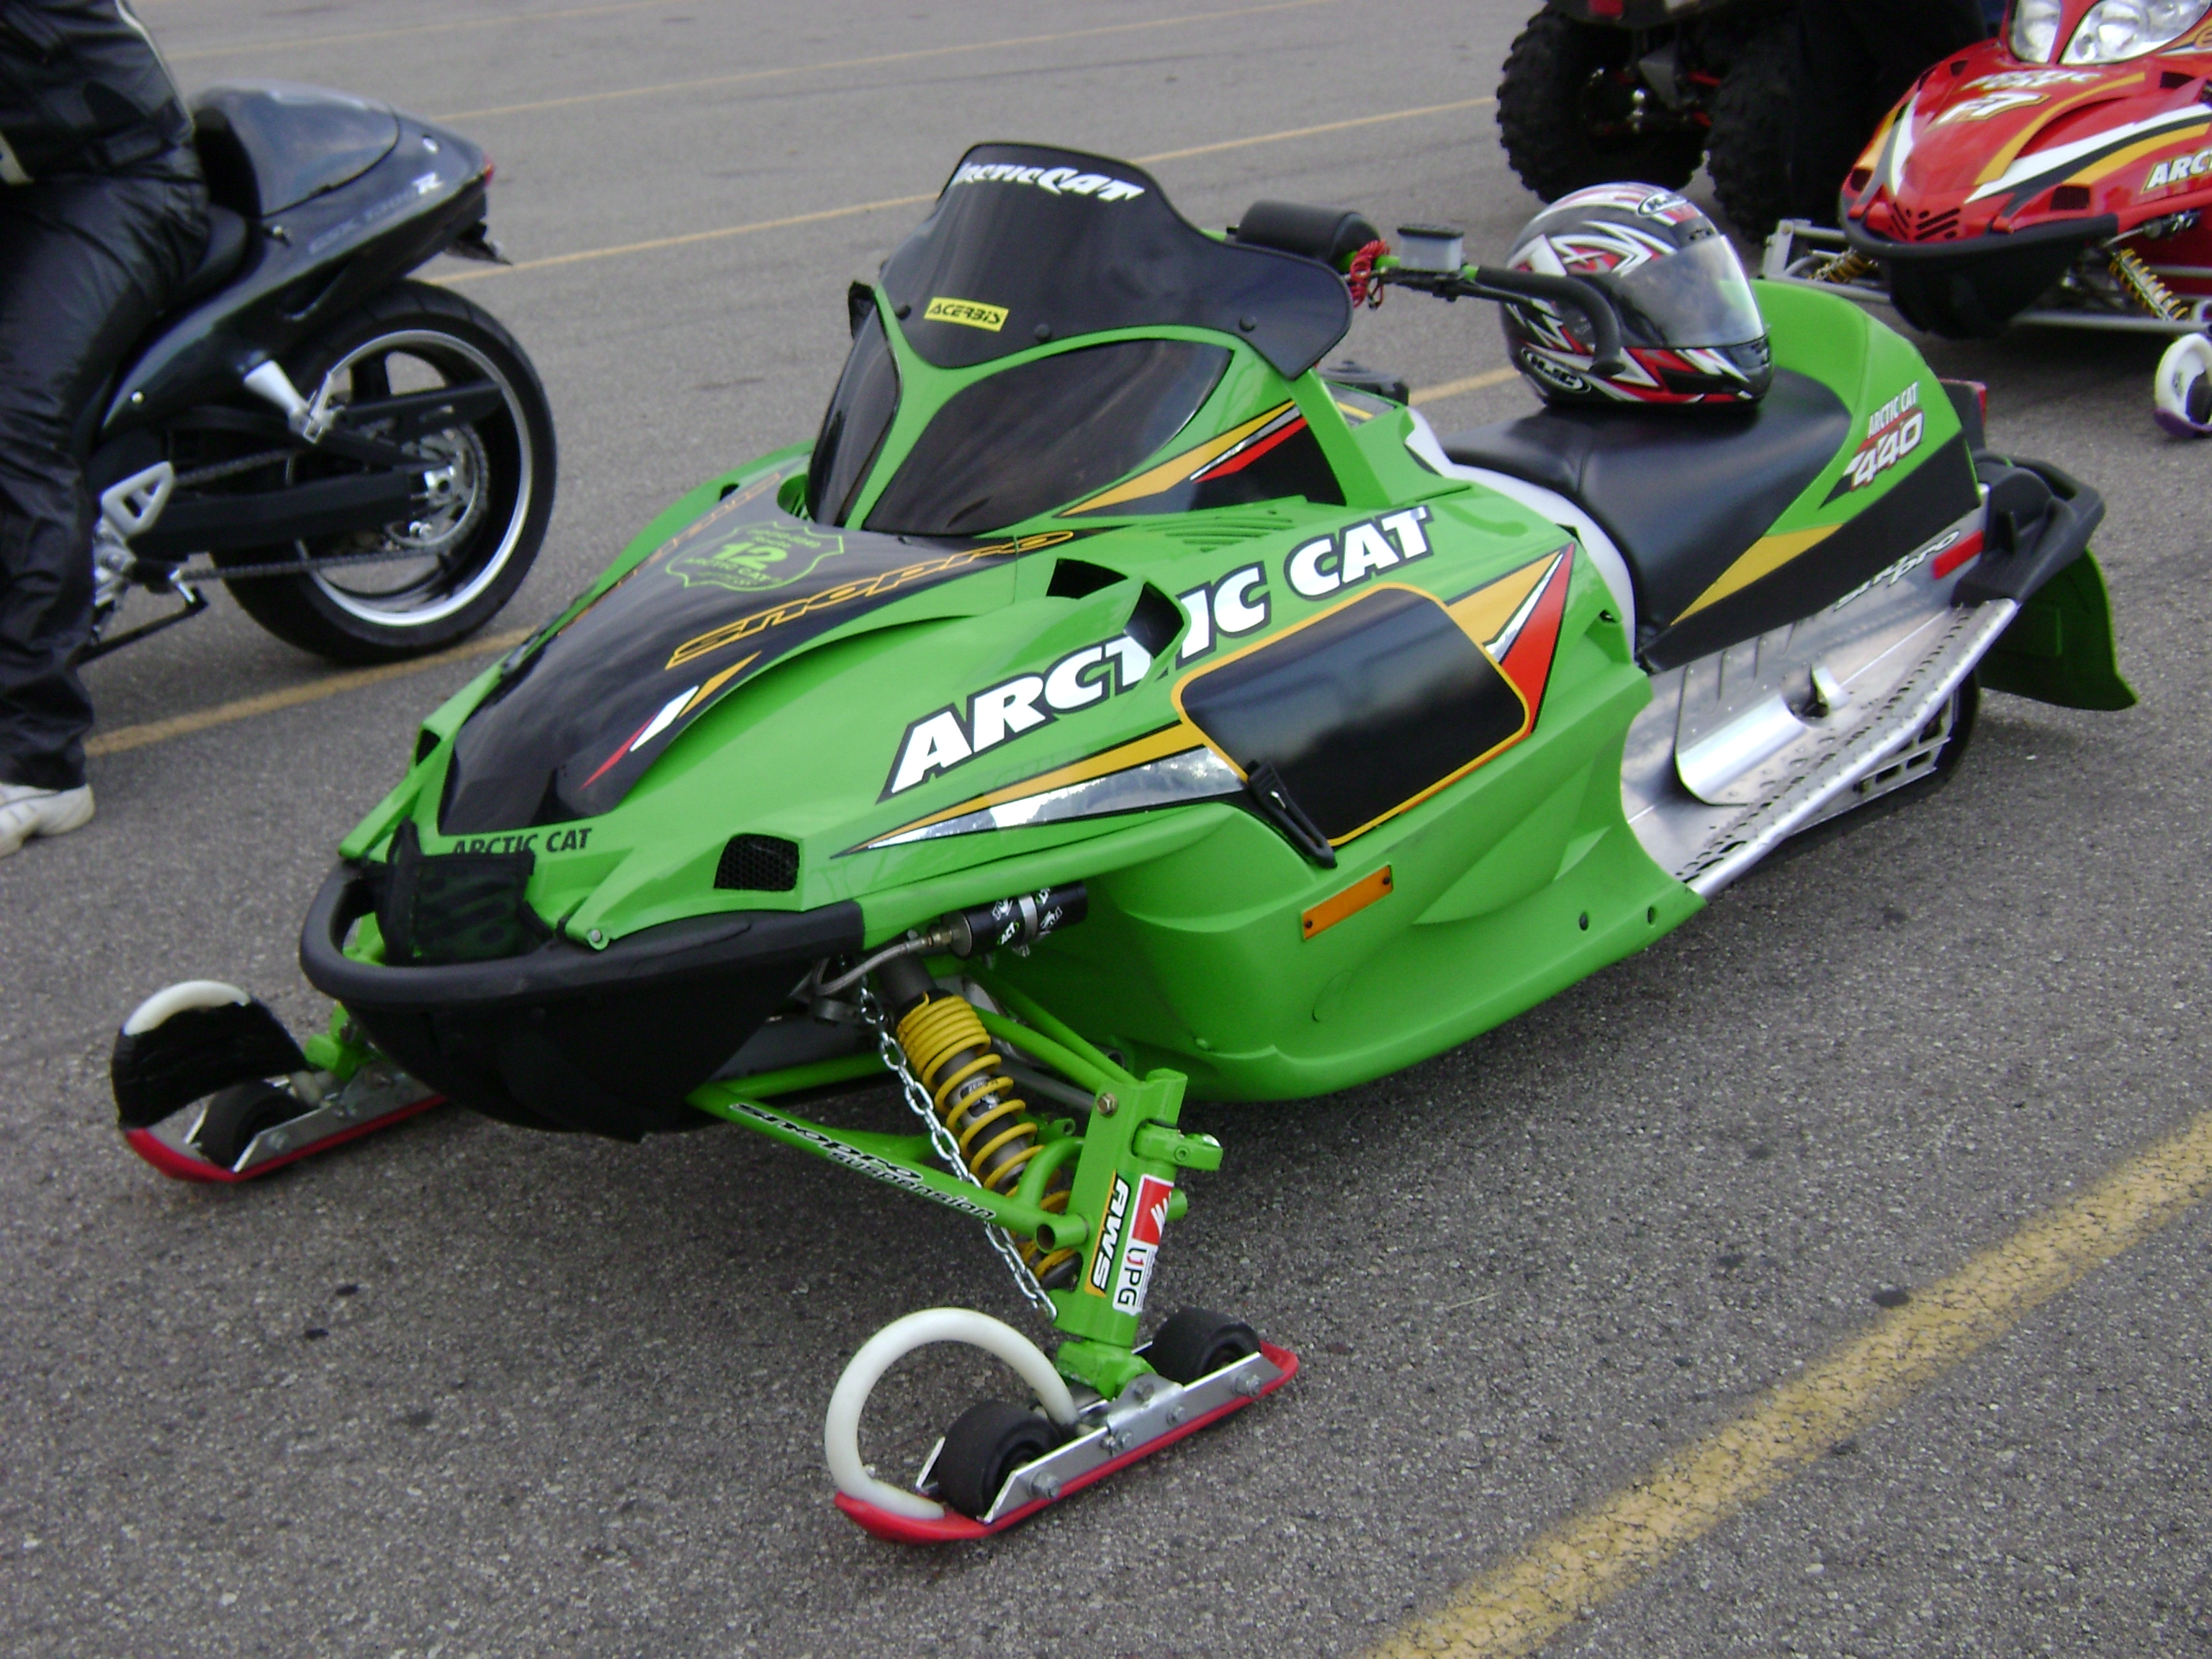 Pictures Arcticinsider Future Collectible Arctic Cats Part Two Cat Zl 440 Wiring Diagram 03 Sno Pro Service Manual